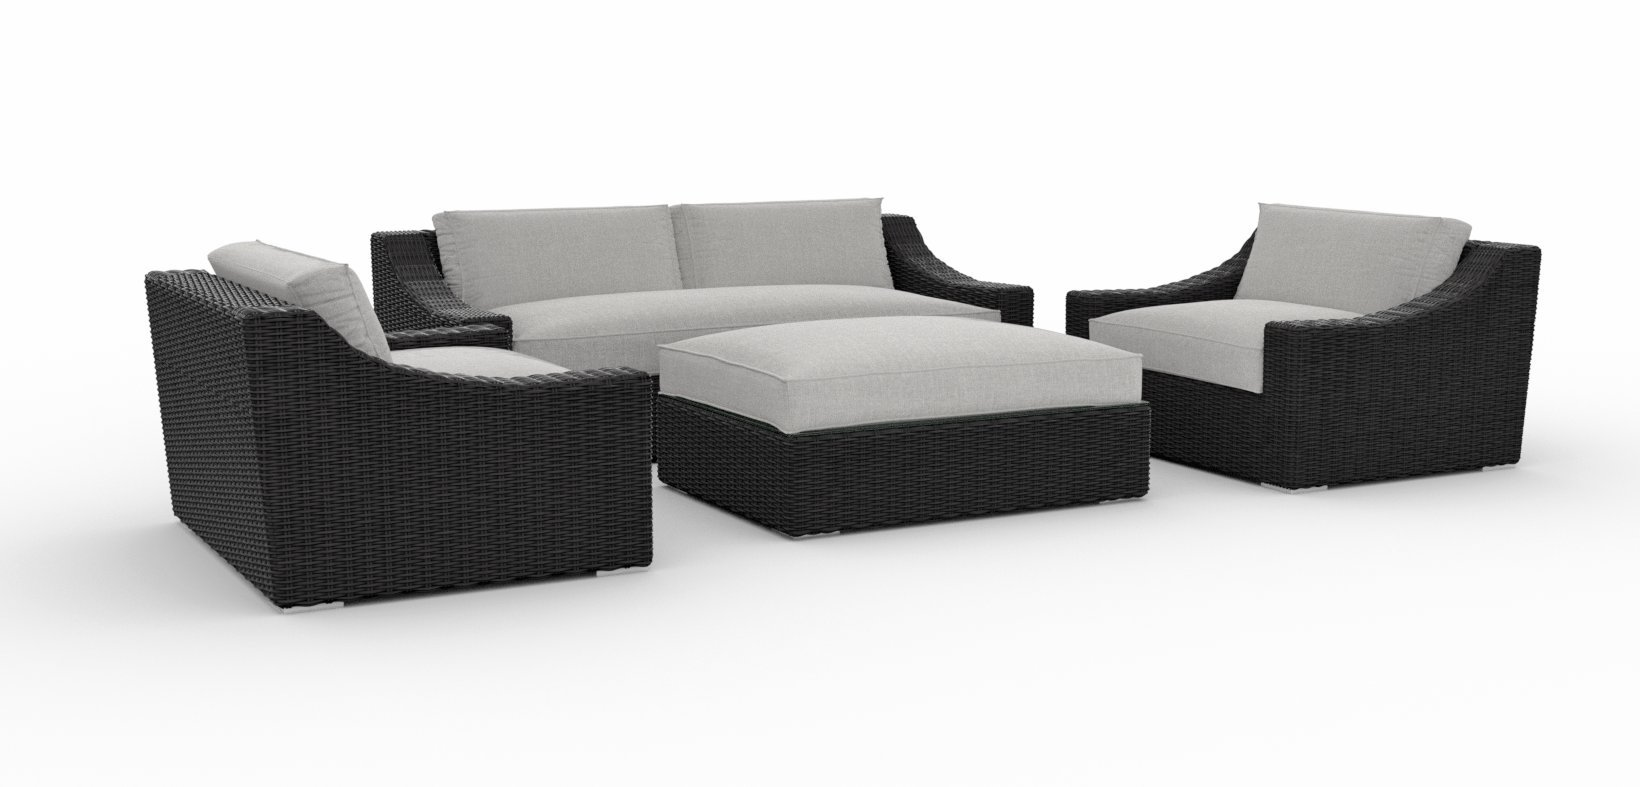 Toja Bretton Outdoor Patio Sofa Set (4 pcs) | Wicker Rattan Body with Sunbrella Cushions (Cast Silver) - BEAUTIFUL DESIGN & UNMATCHED COMFORT - Our Bretton line has a higher back and modern sloping arms. The durable PE wicker body has a modern design that looks great on any patio or in any outdoor area. High-density foam cushions provide unmatched comfort and ample seating space. ALL-WEATHER DURABLE WICKER BODY - This couch set's durable construction ensure that you'll enjoy your Toja furniture for years to come. The furniture's powder coated aluminum frame is covered in a tight double weave of durable PE wicker rattan. SUNBRELLA CUSHIONS - The patio furniture set's cushions are crafted from high-density foam and a soft Sunbrella fabric which resists fading and keeps your furniture looking new. Along with being stain and mildew resistant, the Sunbrella fabric is suitable for all types of weather and provides unmatched protection from rain, sun, and other elements. - patio-furniture, patio, conversation-sets - 61RHdXDCRQL -